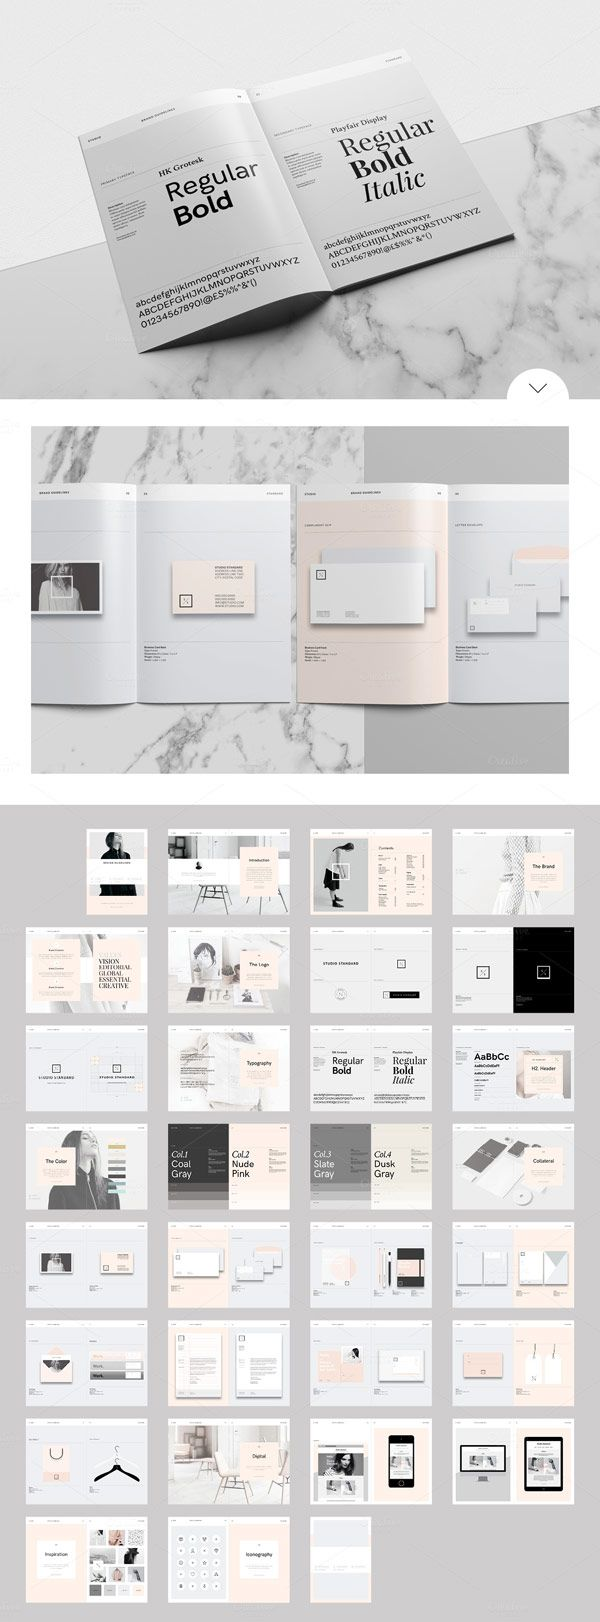 A great studio branding guidelines template in a modern and minimalist brochure design. Whether for clients or for the own design studio, creating a unique brand identity is very time consuming! The d